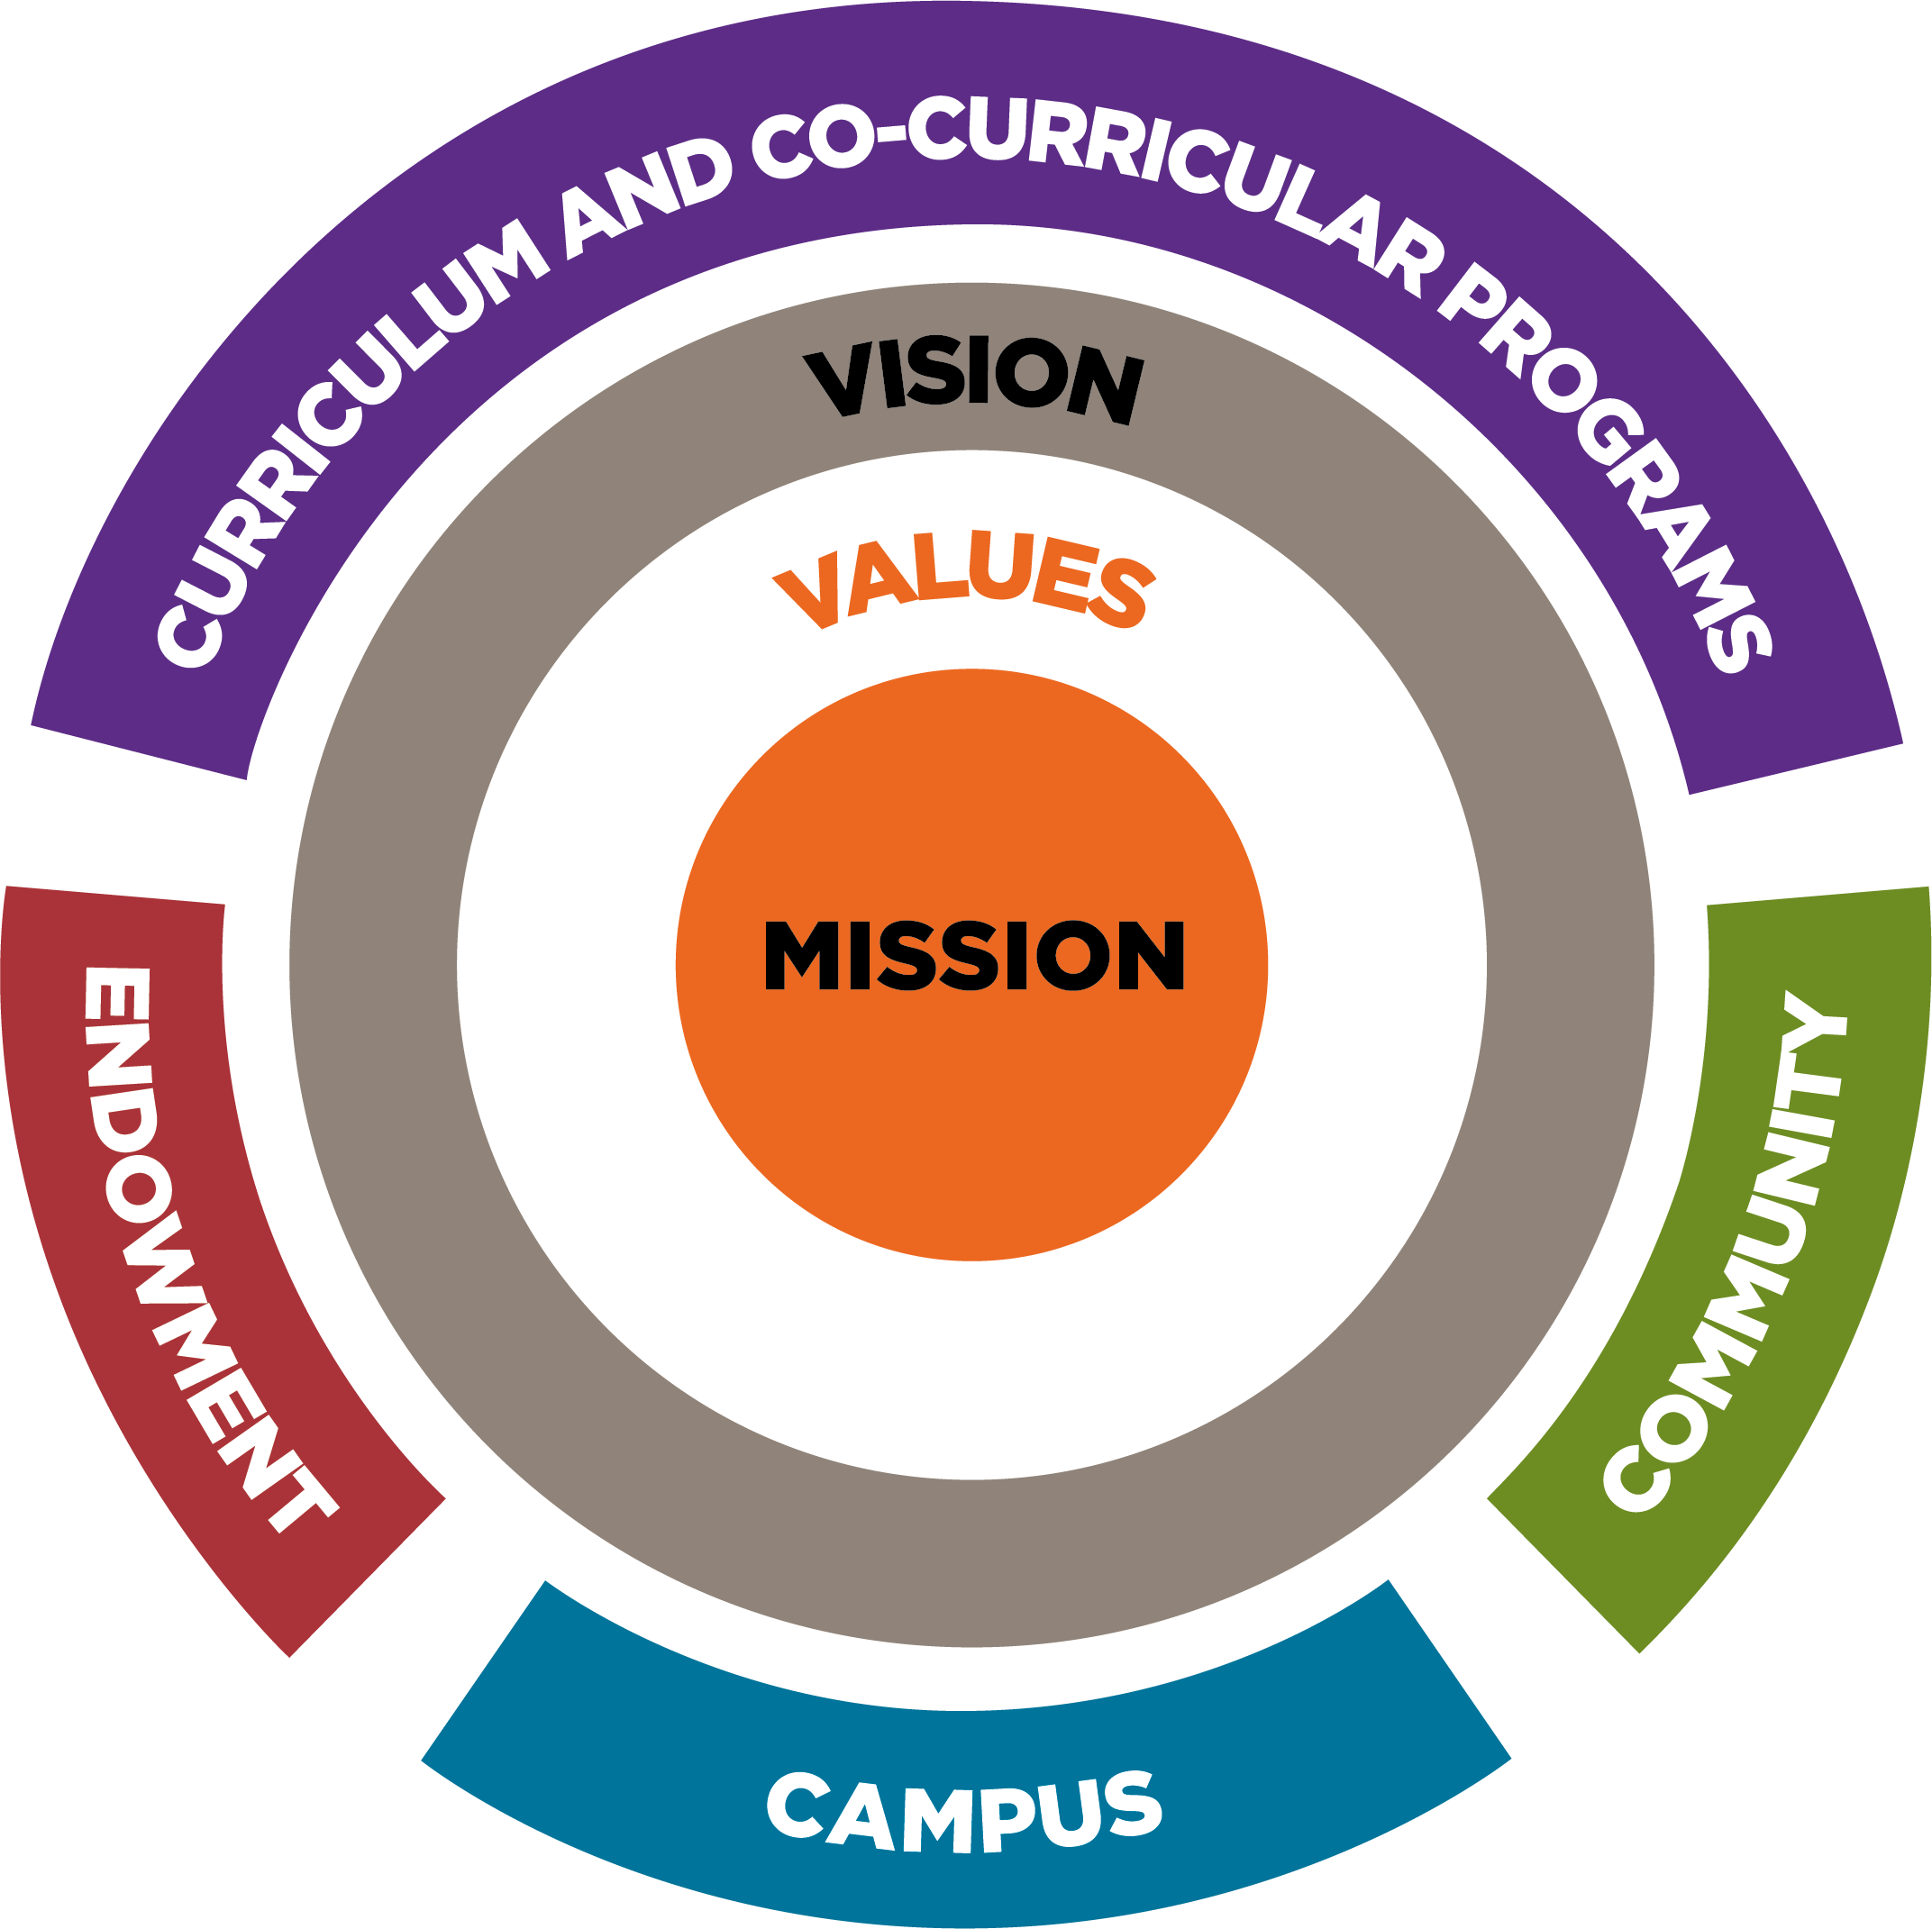 Strategic Vision represented graphically as nested circles,  with Mission at the core, surrounded by Values, surrounded by Vision, surrounded by a ring divided into 4 action areas: Curriculum/co-curricular programs, Community, Campus, and Endowment